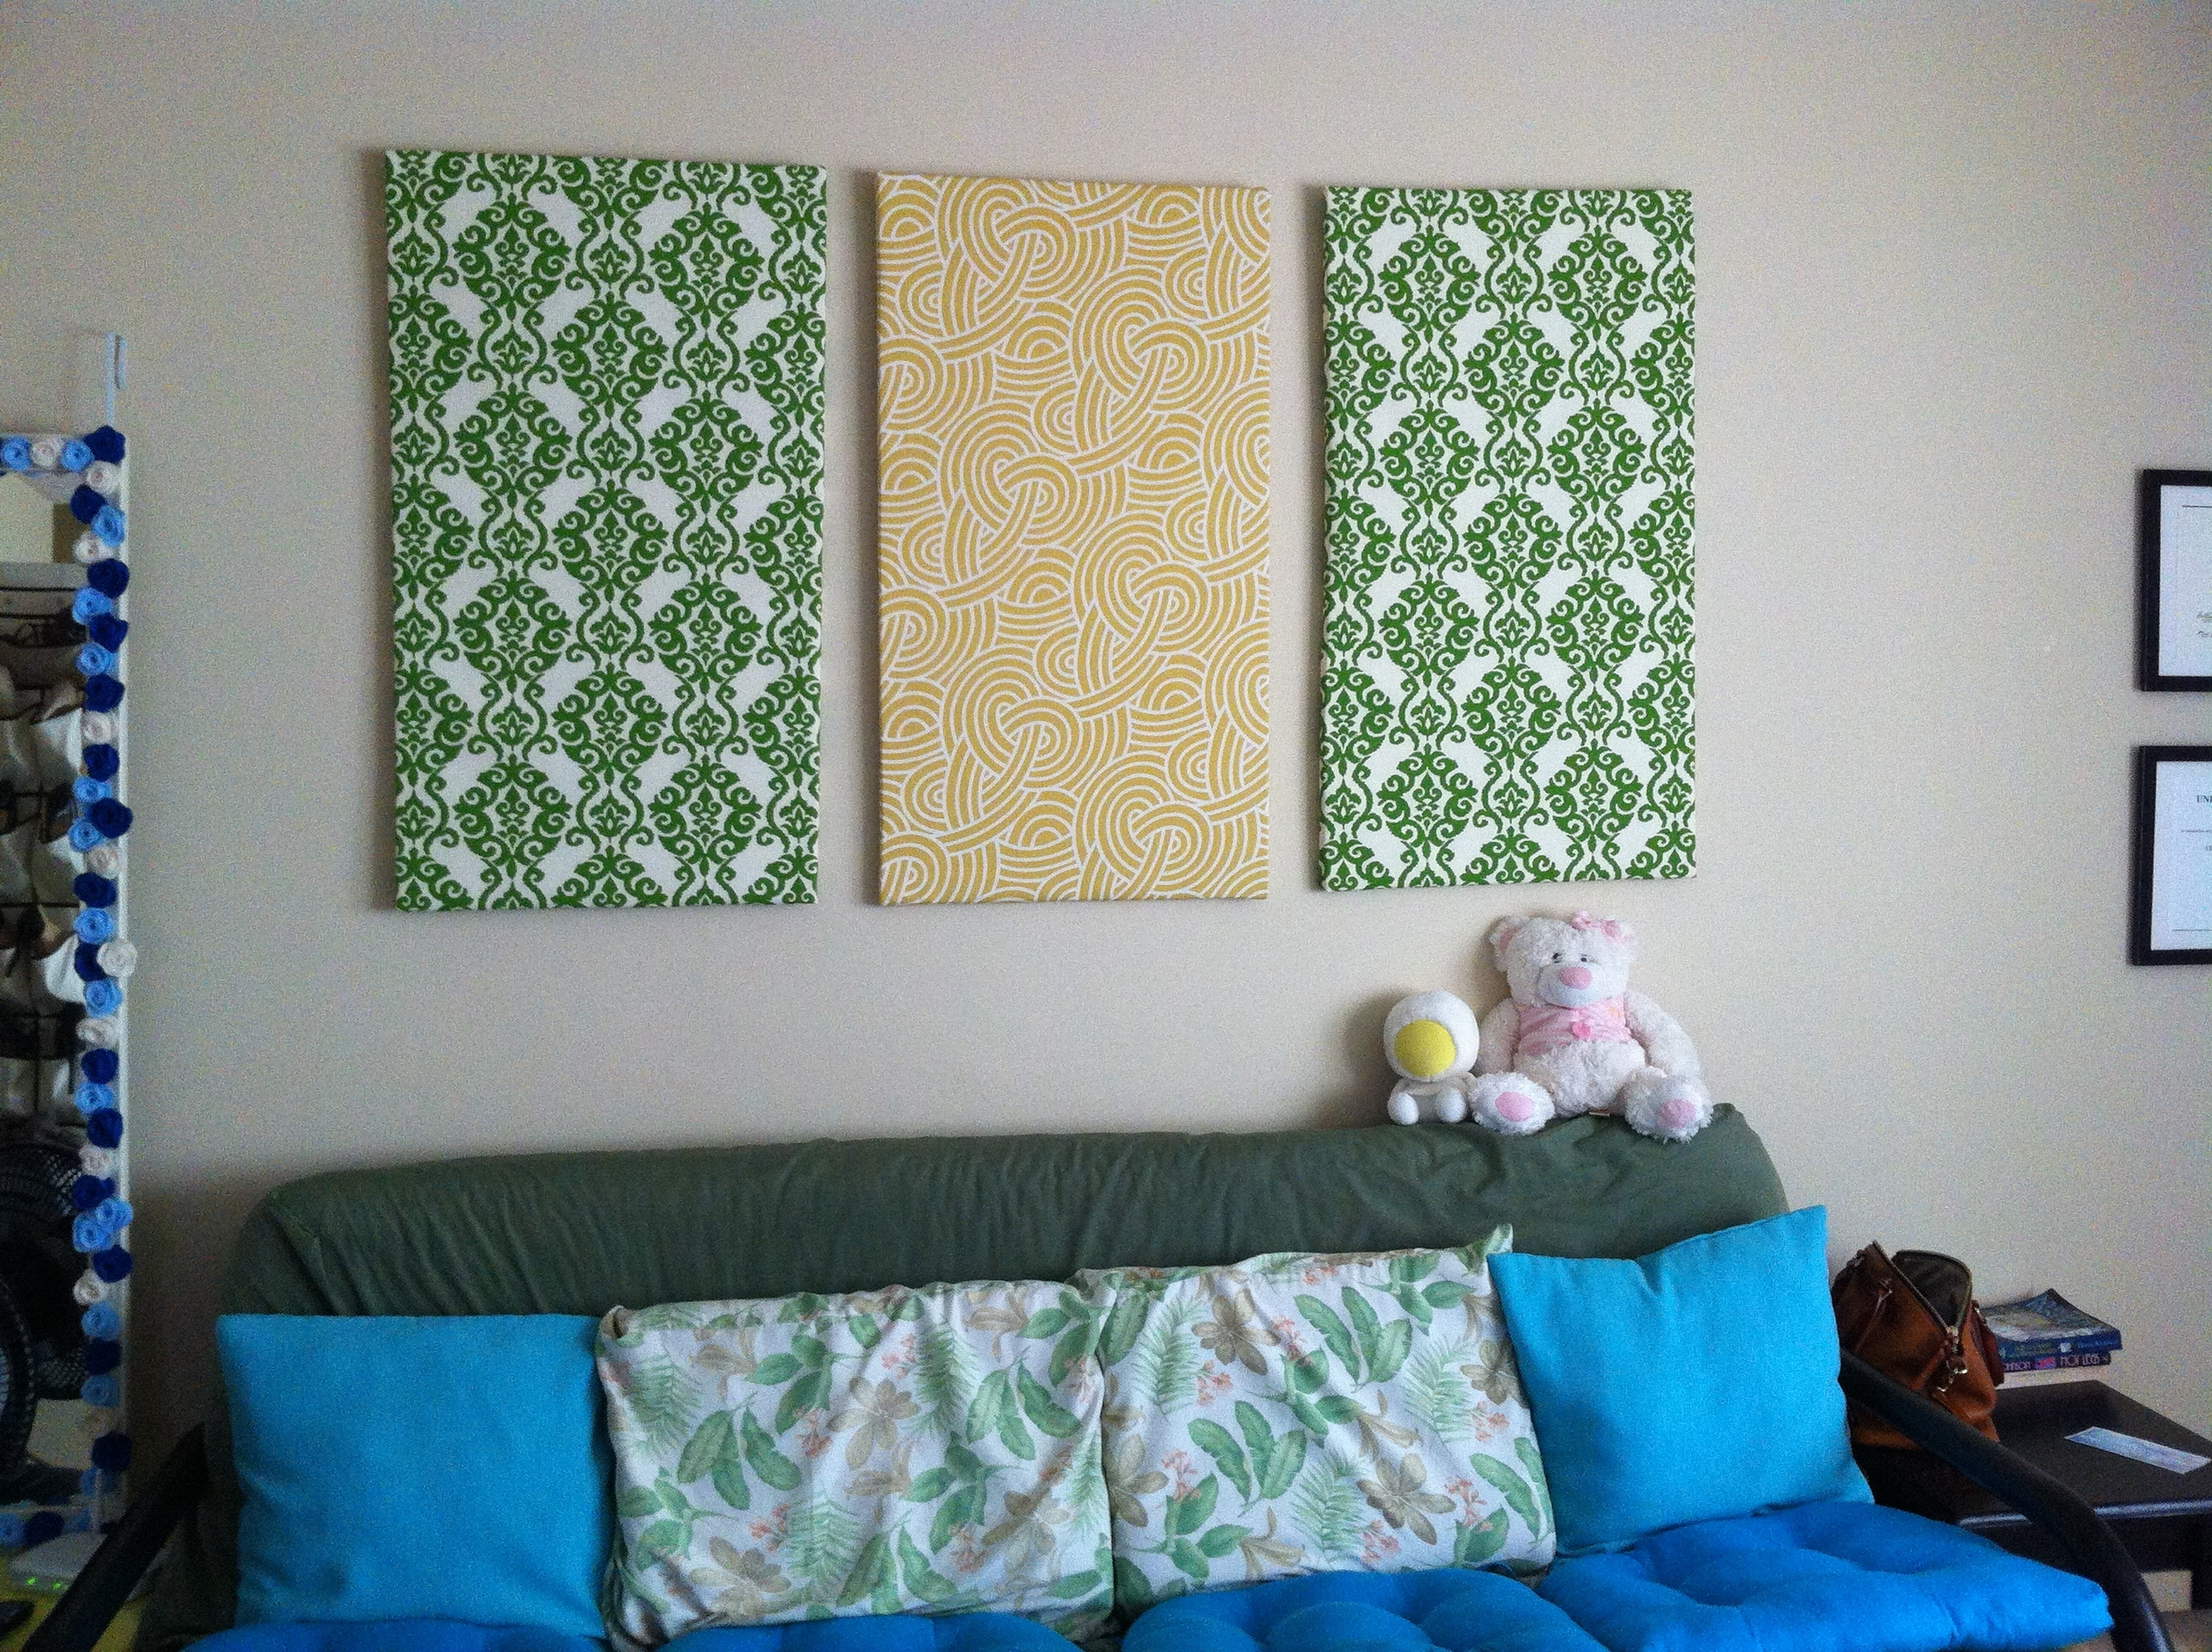 Art: Diy Fabric Wall Art For Most Current Canvas And Fabric Wall Art (View 2 of 15)